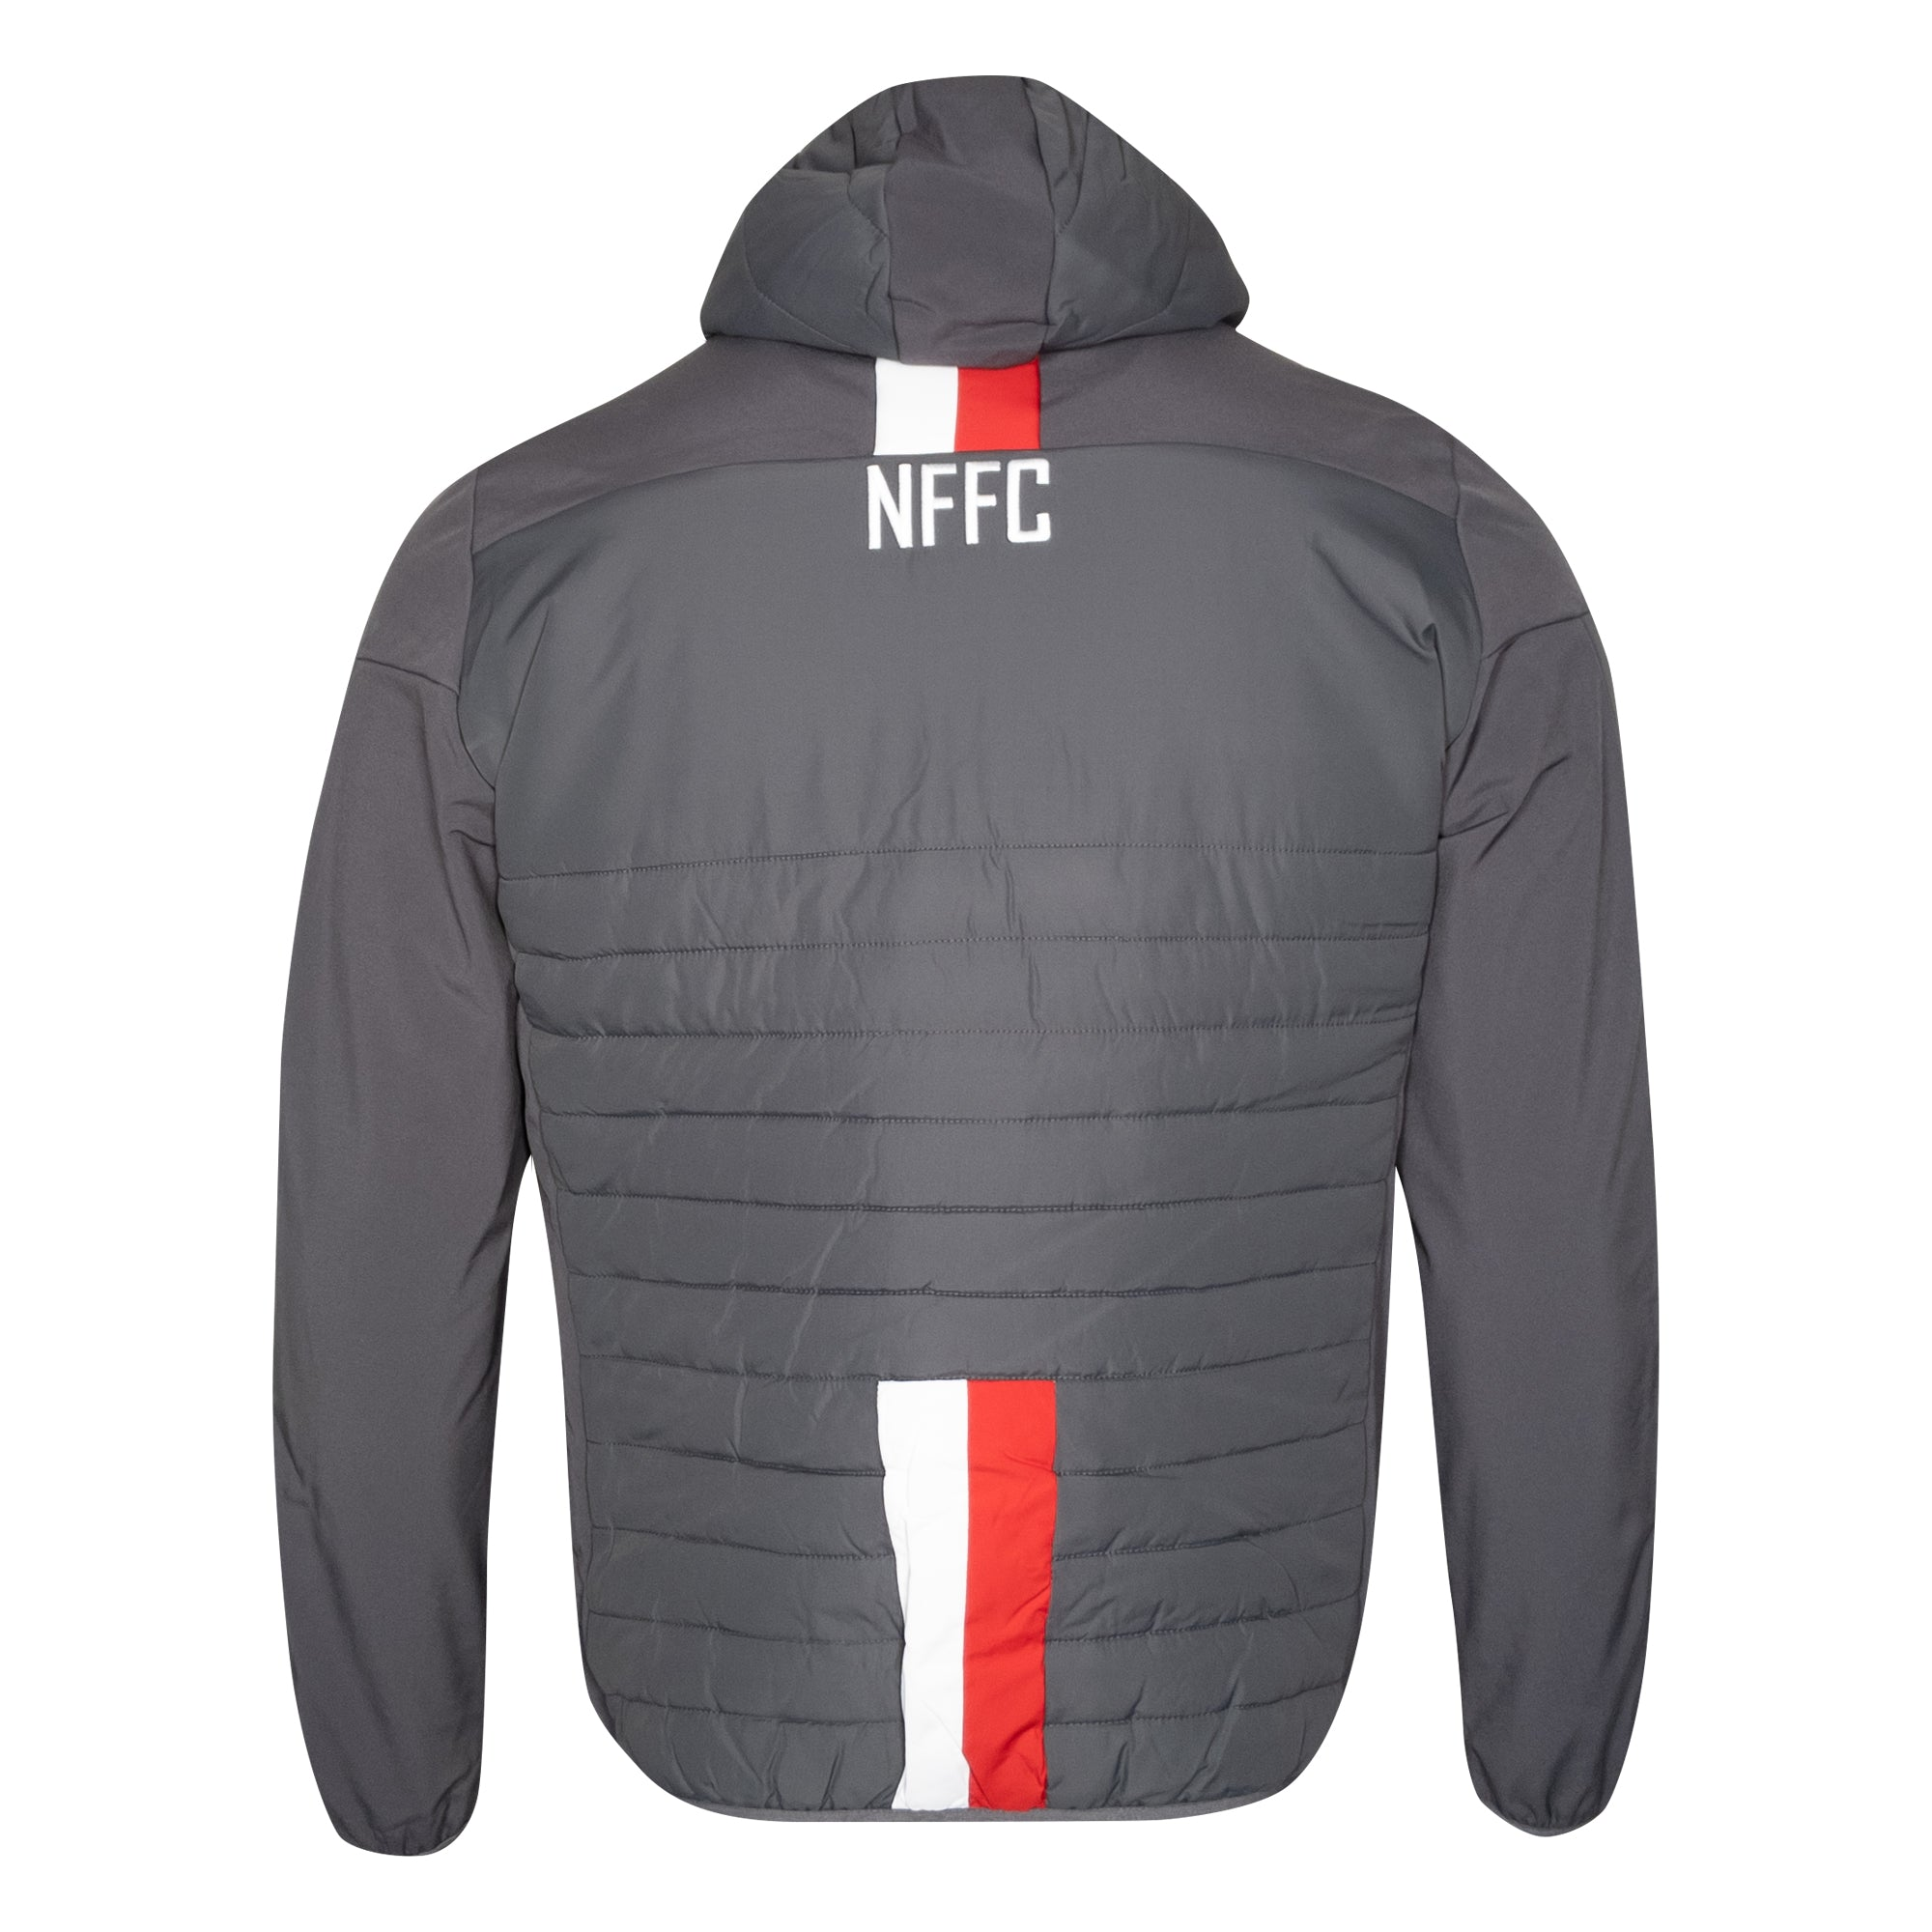 NFFC Mens Grey Staff Bomber Jacket 19/20